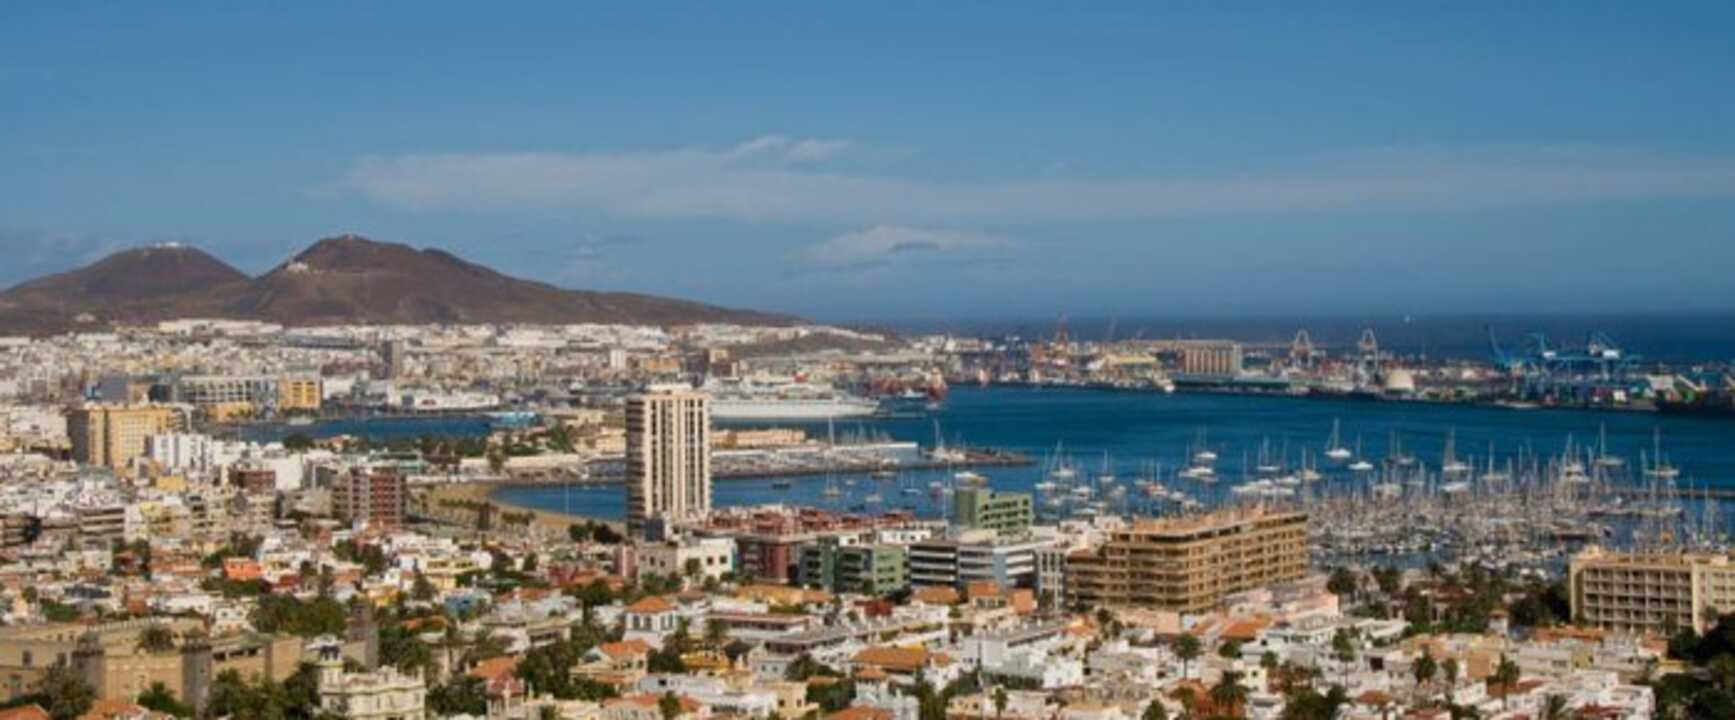 Cheap Holidays To Las Palmas On The Beach